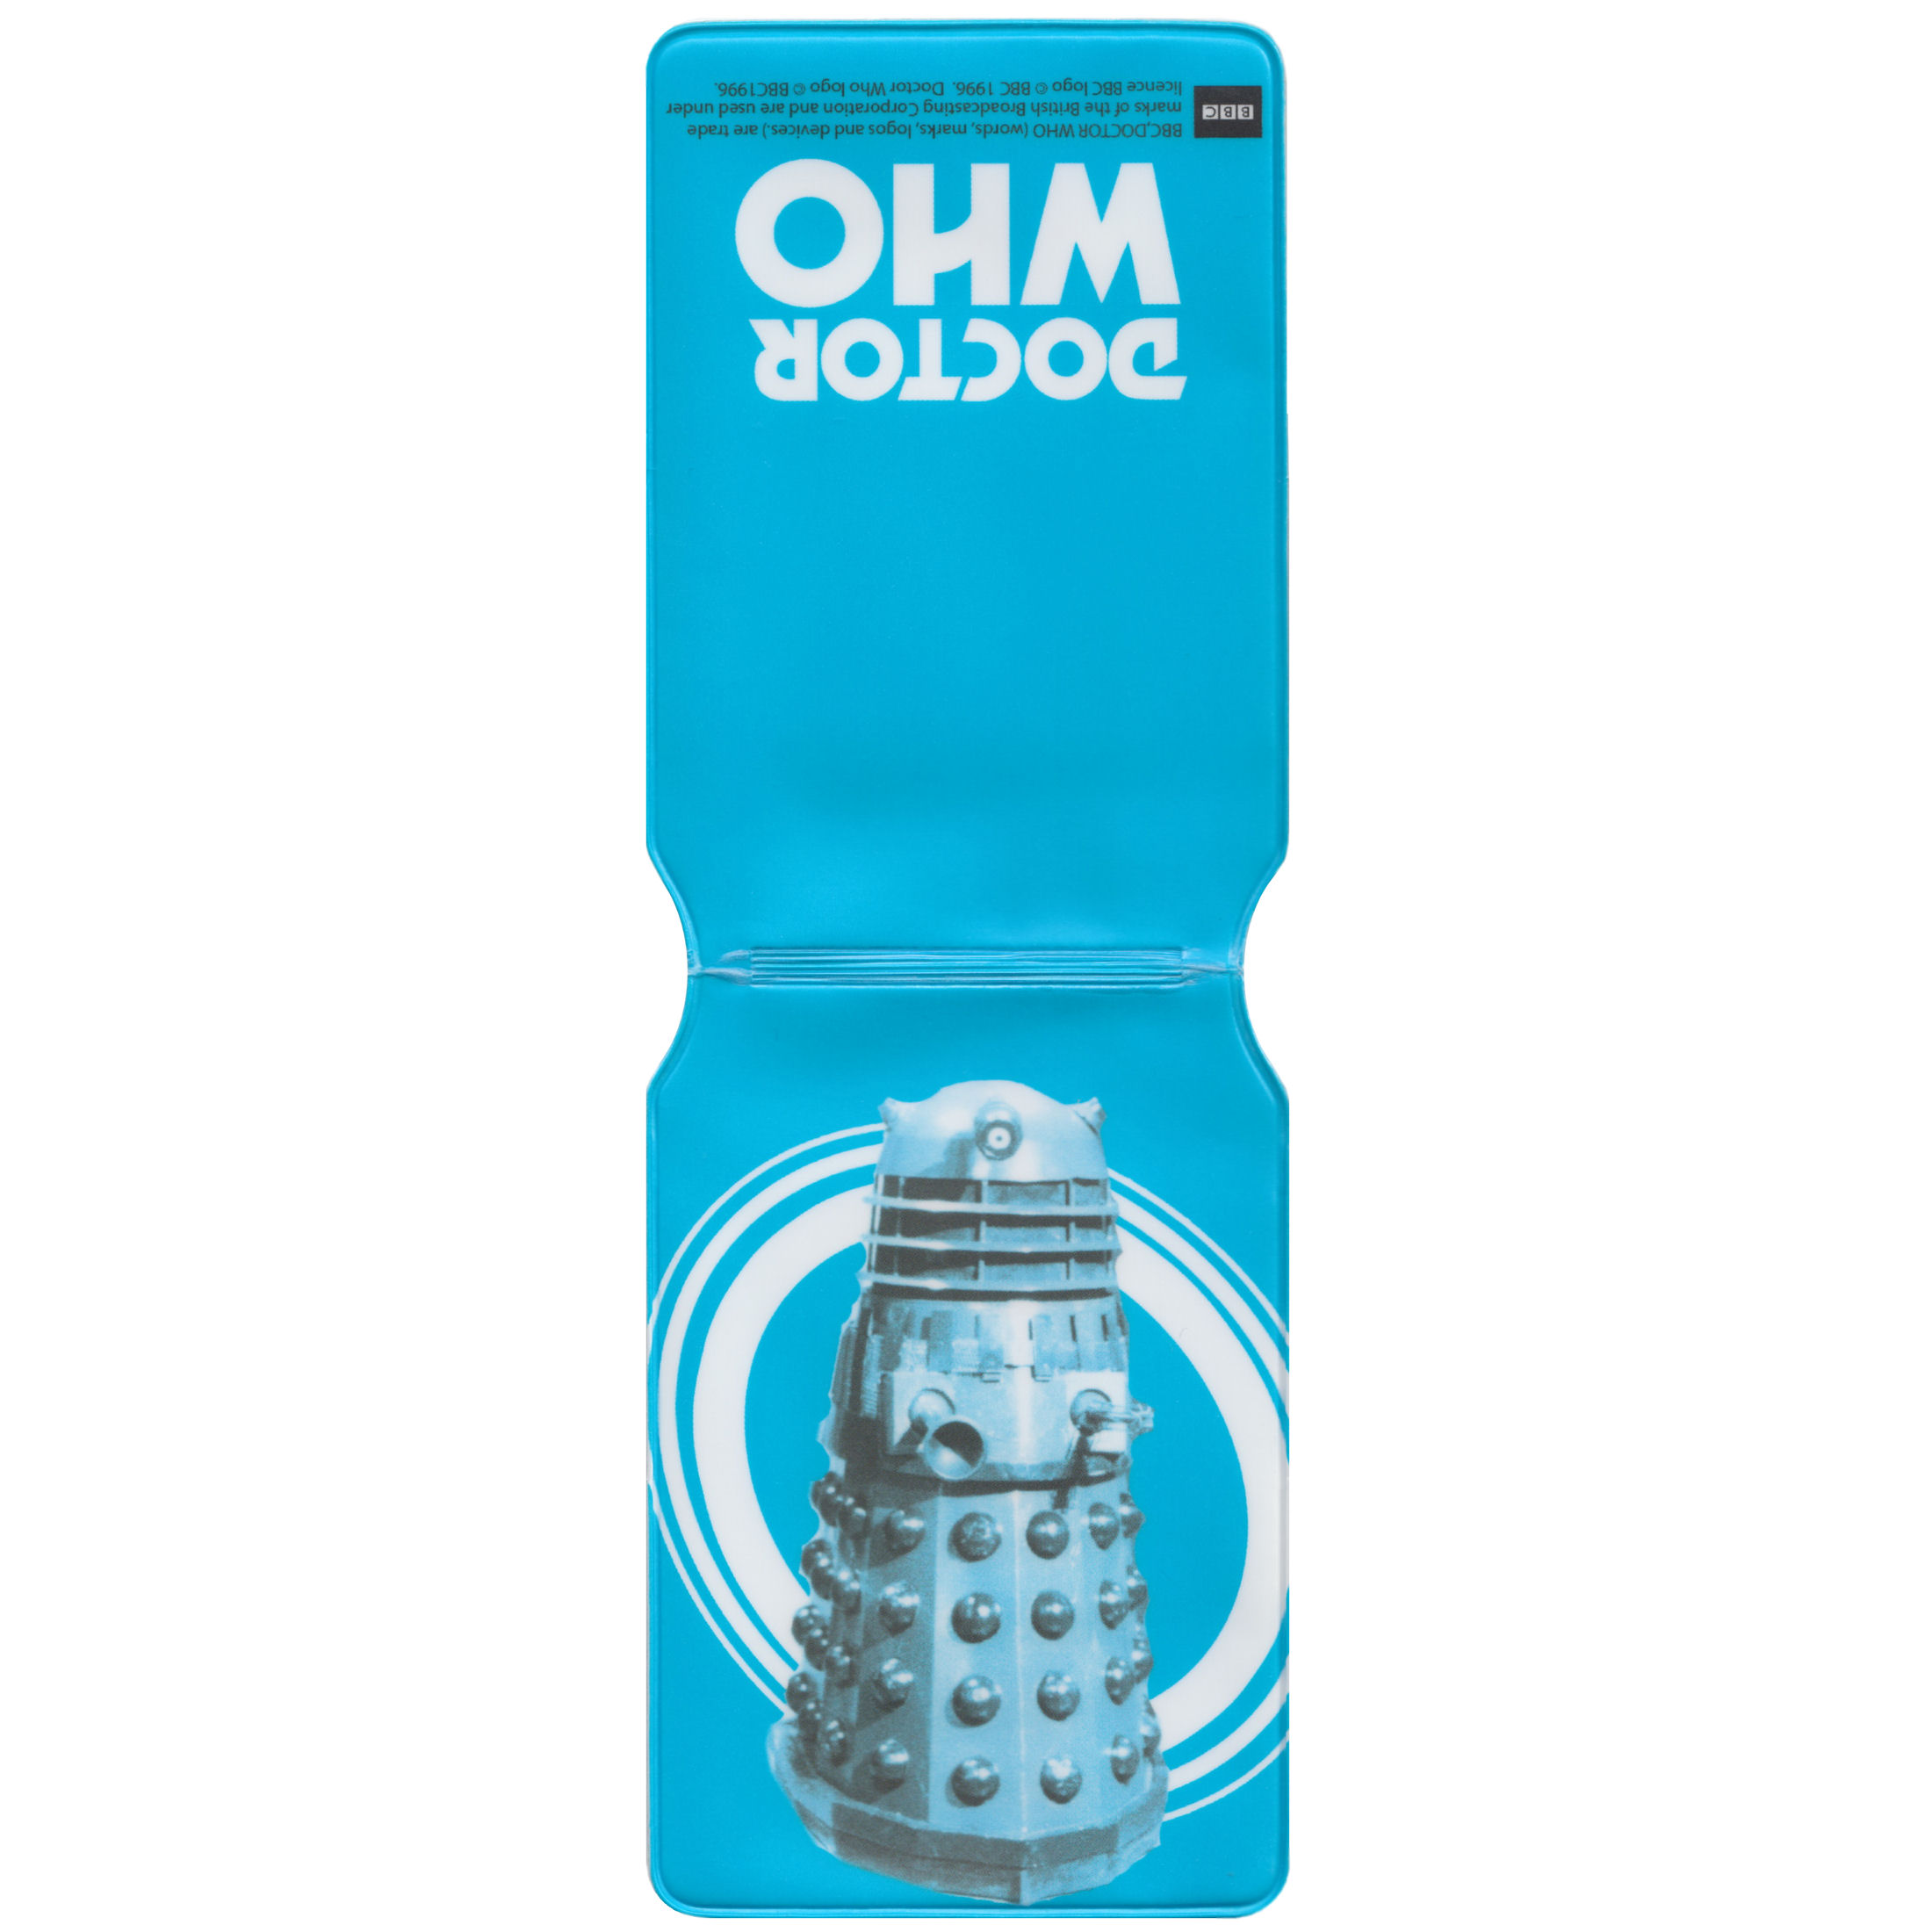 Doctor Who (Blue Pop Art Dalek) Travel/Oyster Card Holder